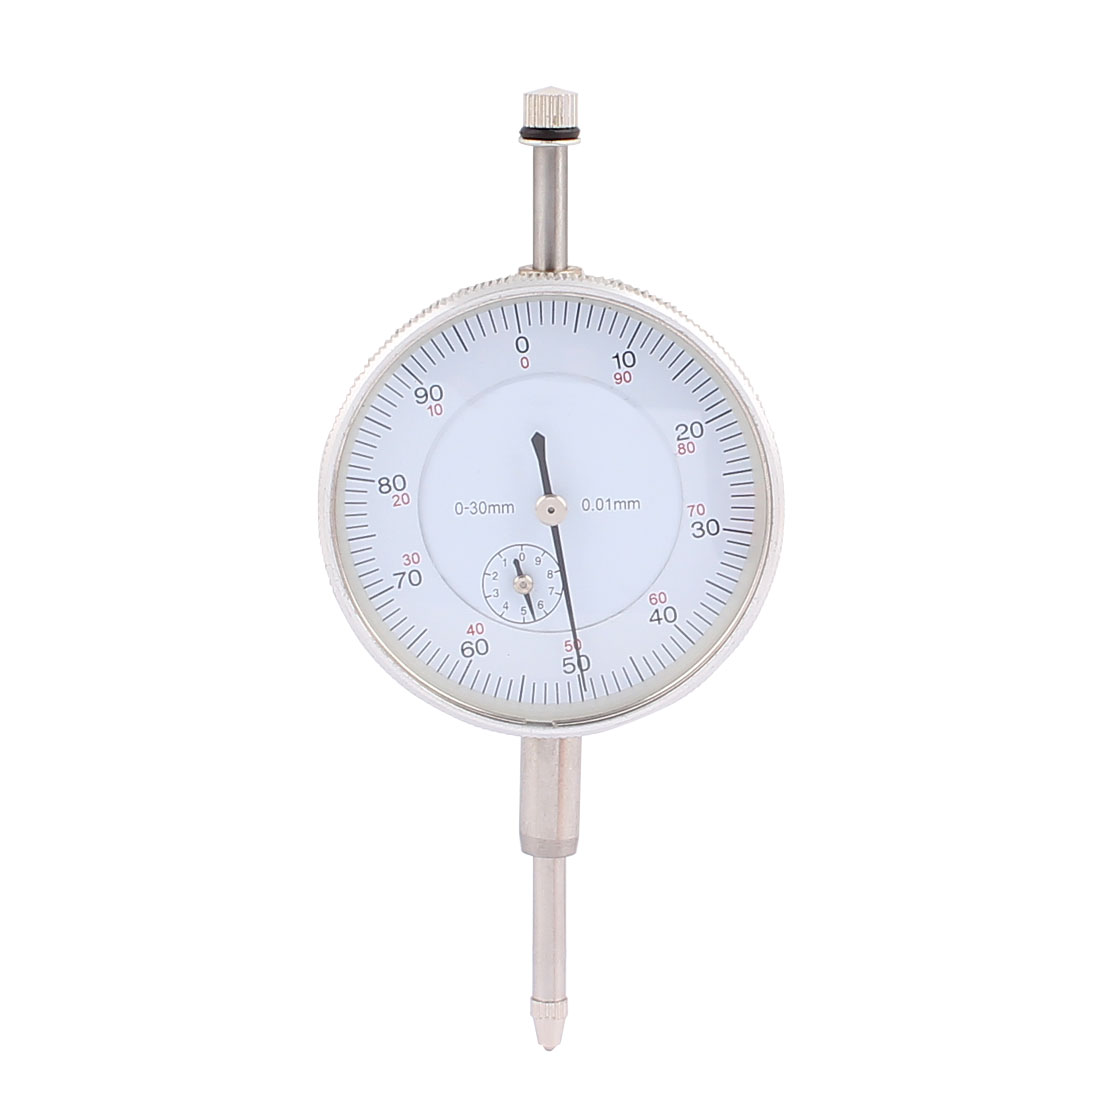 0.03mm Accuracy Measurement Instrument Dial Indicator Gauge Precision Tool